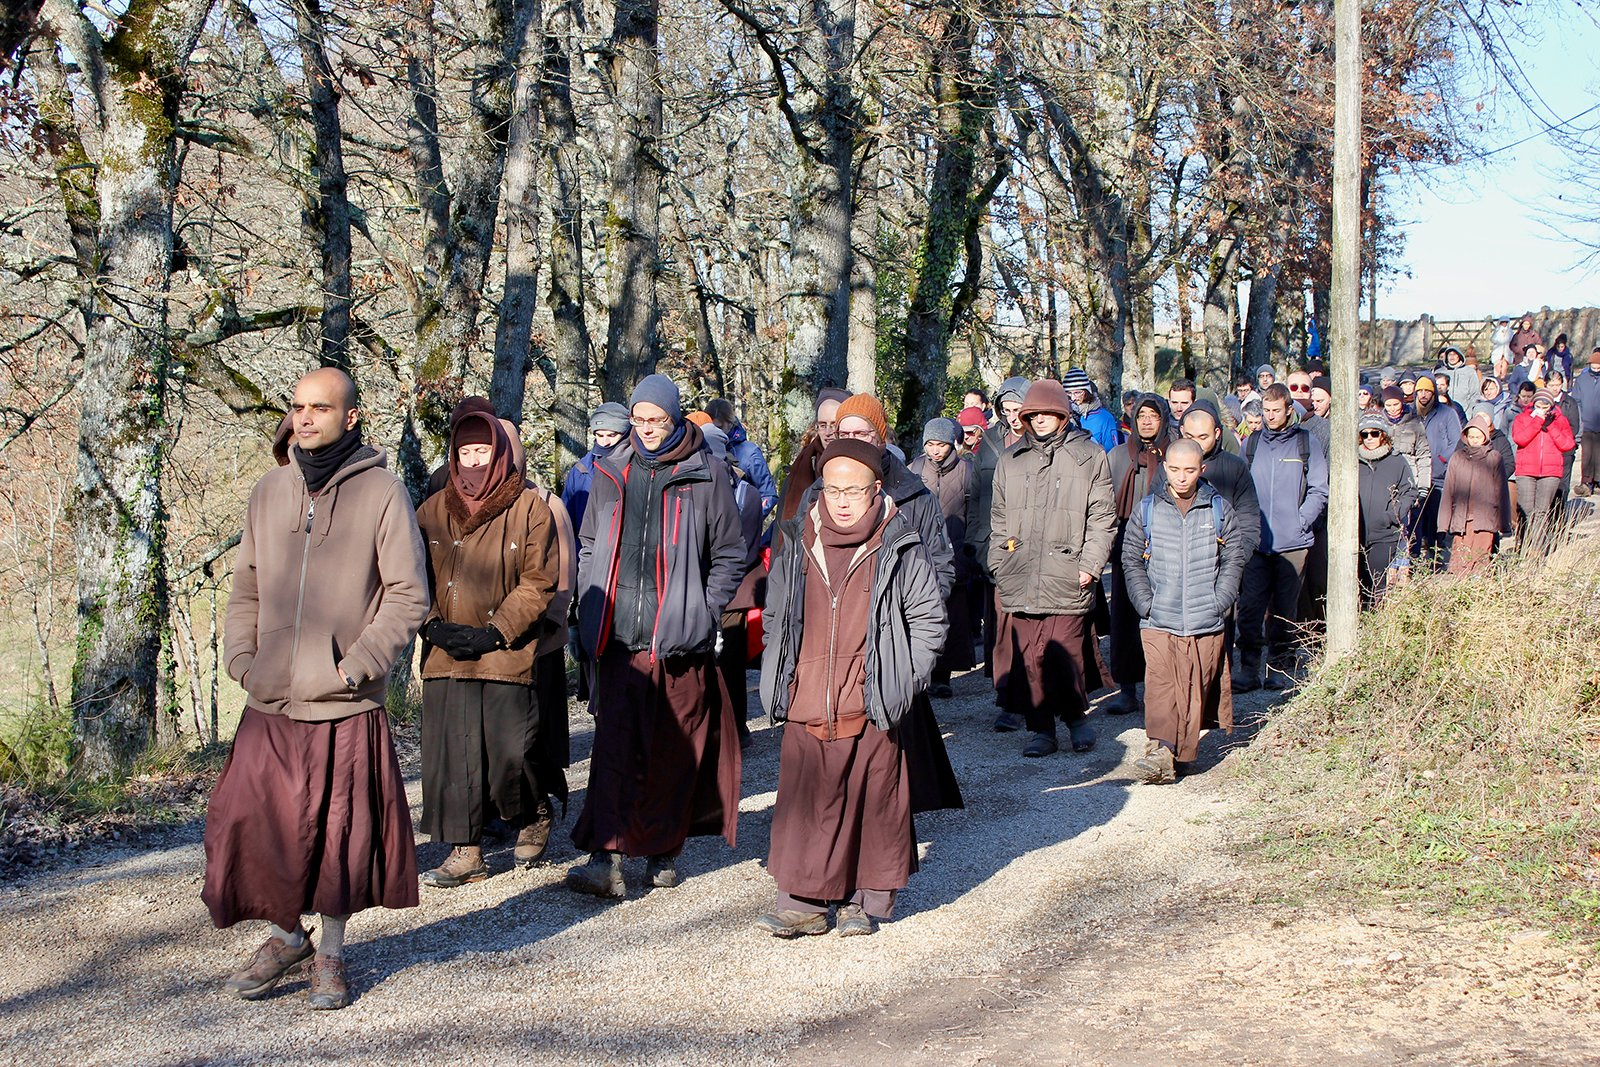 Educators participate in a walking meditation during a Wake Up Schools retreat for educators at the Plum Village mindfulness practice center in the South of France in Dec. 2019. Photo by Megan Sweas